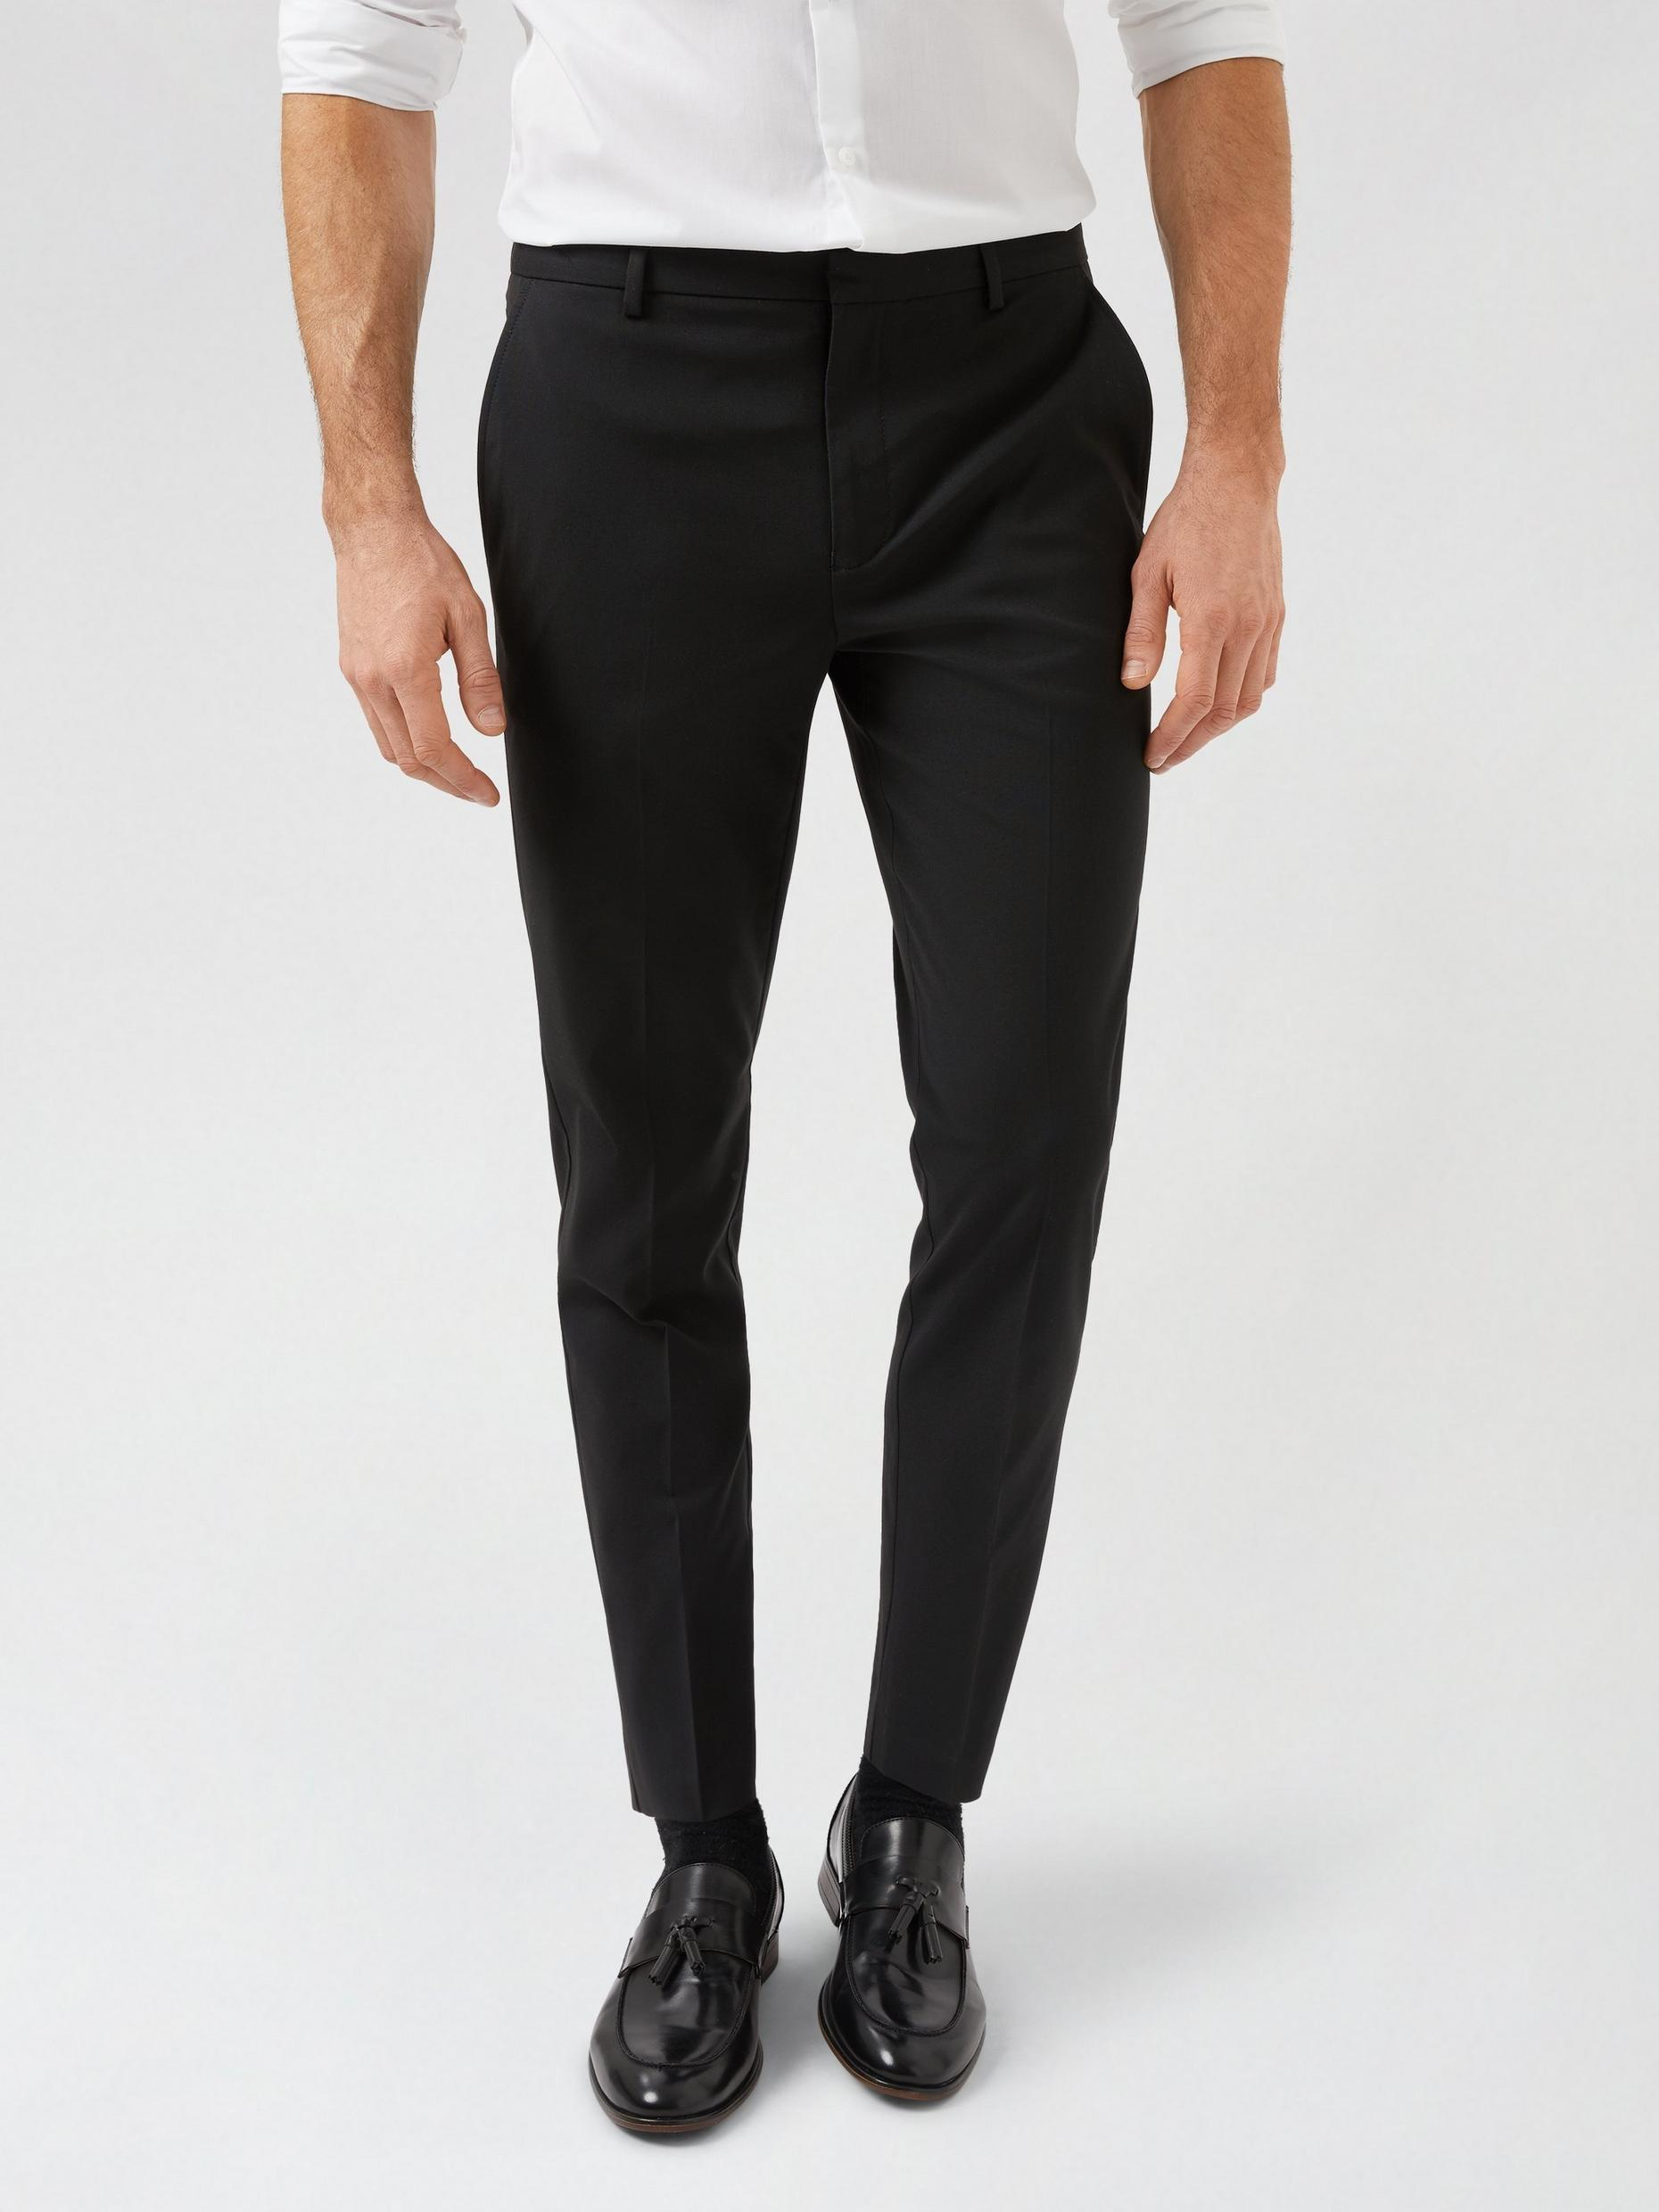 Black Skinny Fit Trousers With Recycled Polyester